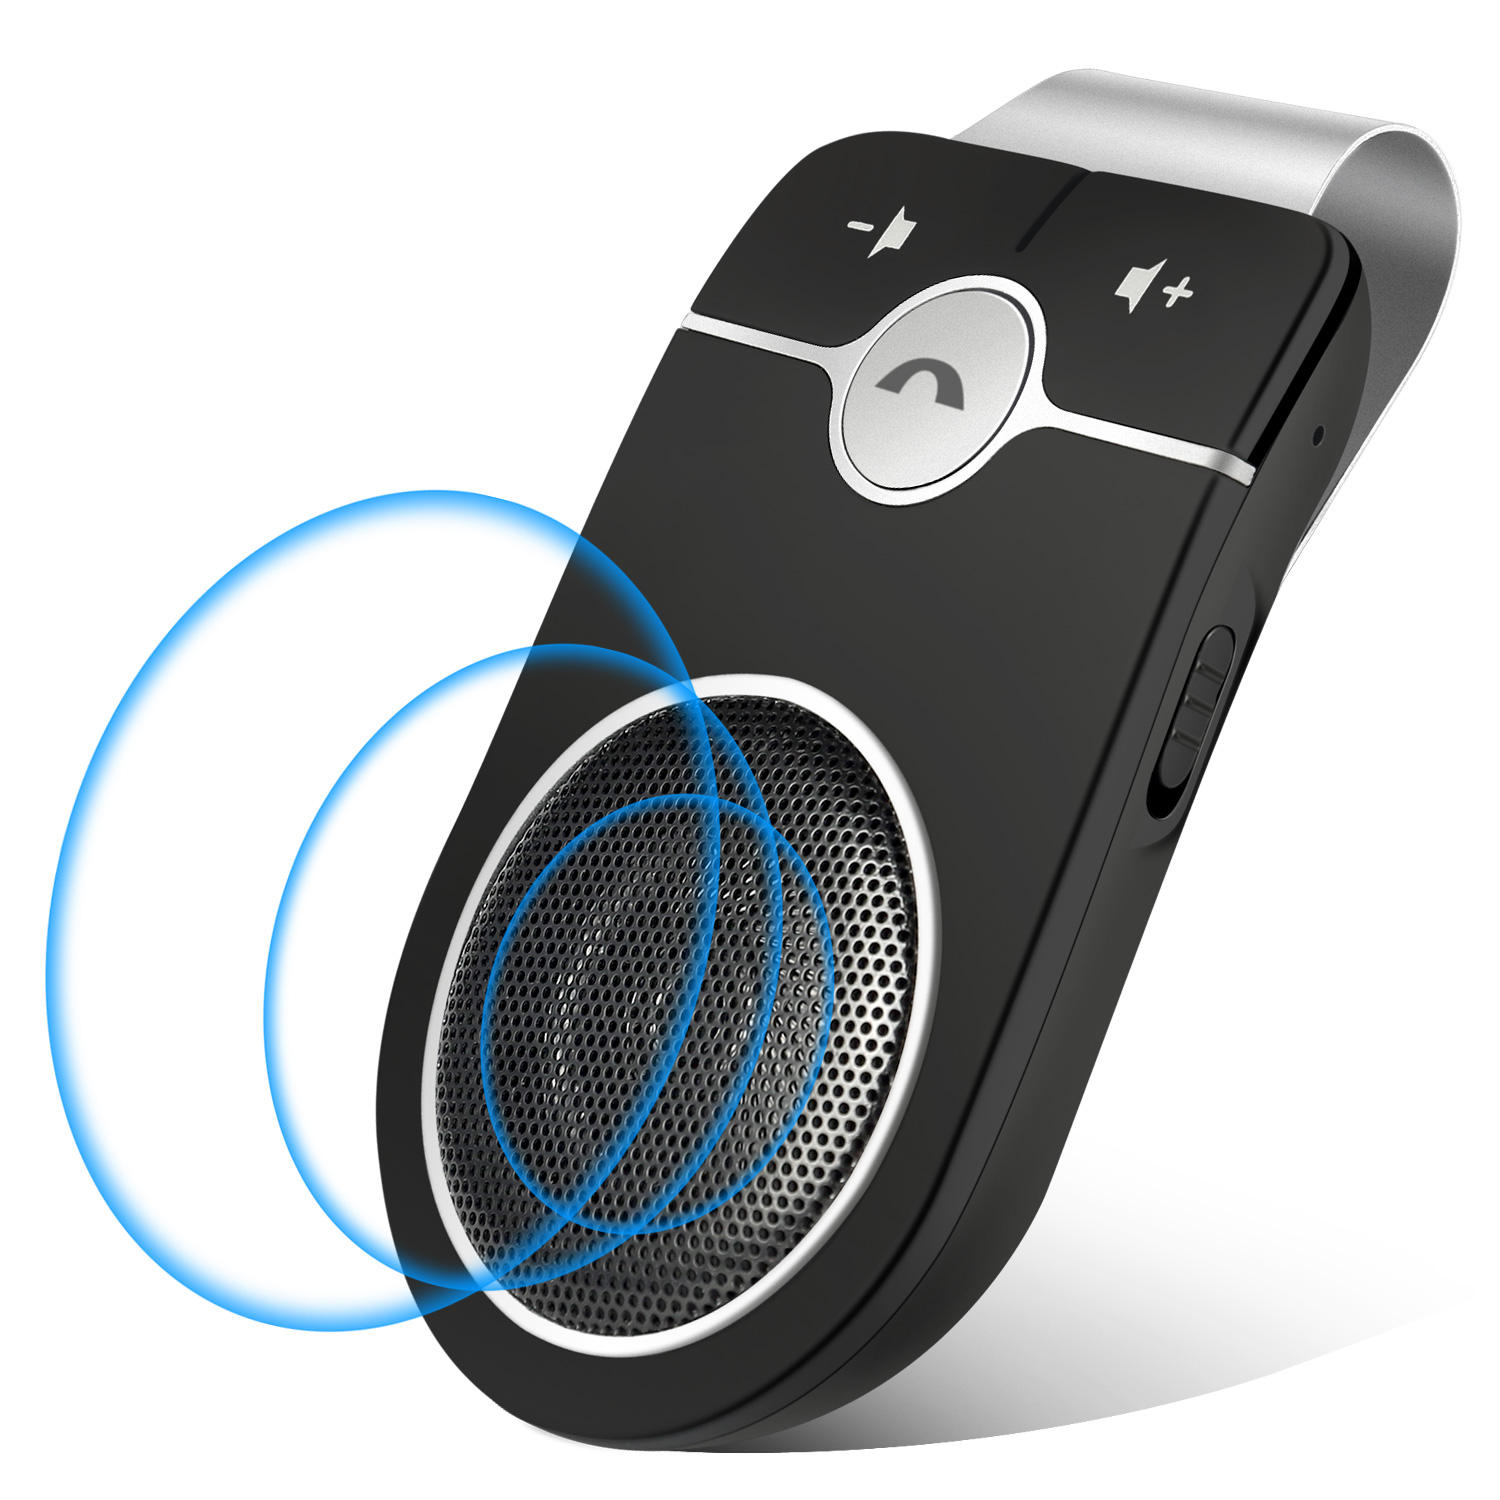 Car speaker multipoint speakerphone manos libres bluetooth para celular dsp technology Bluetooth handsfree car kit with Siri